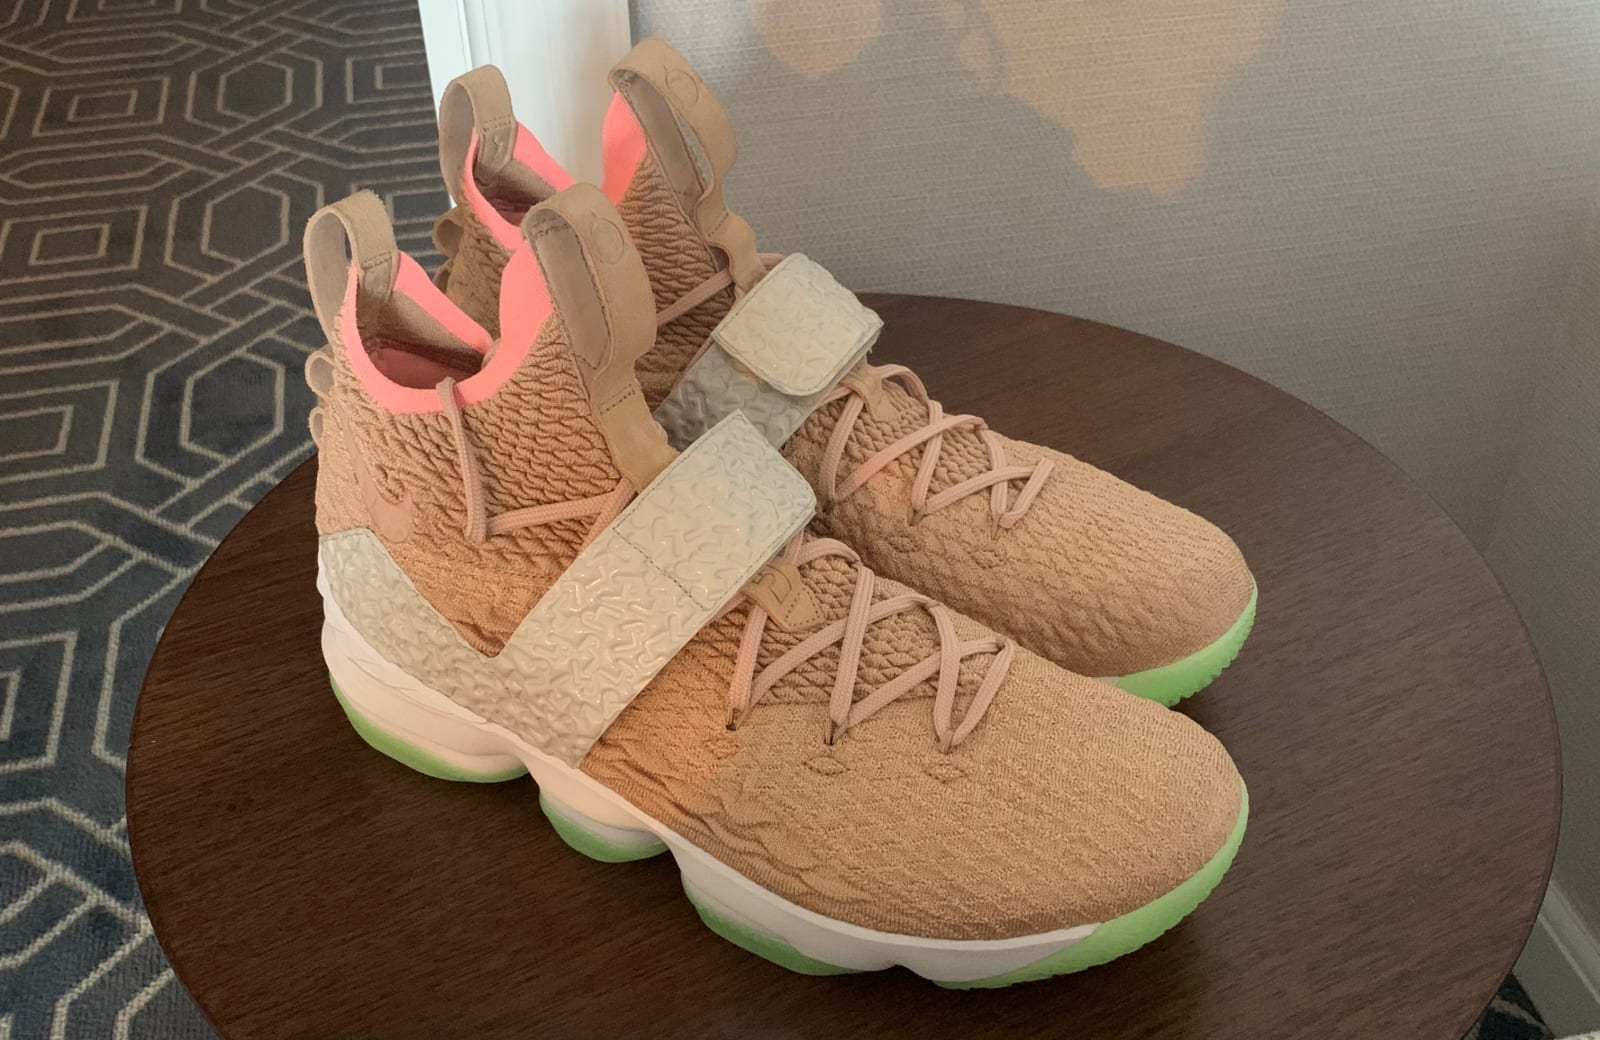 Lebron James spottet i Air Yeezy-inspireret signatur-sneaker